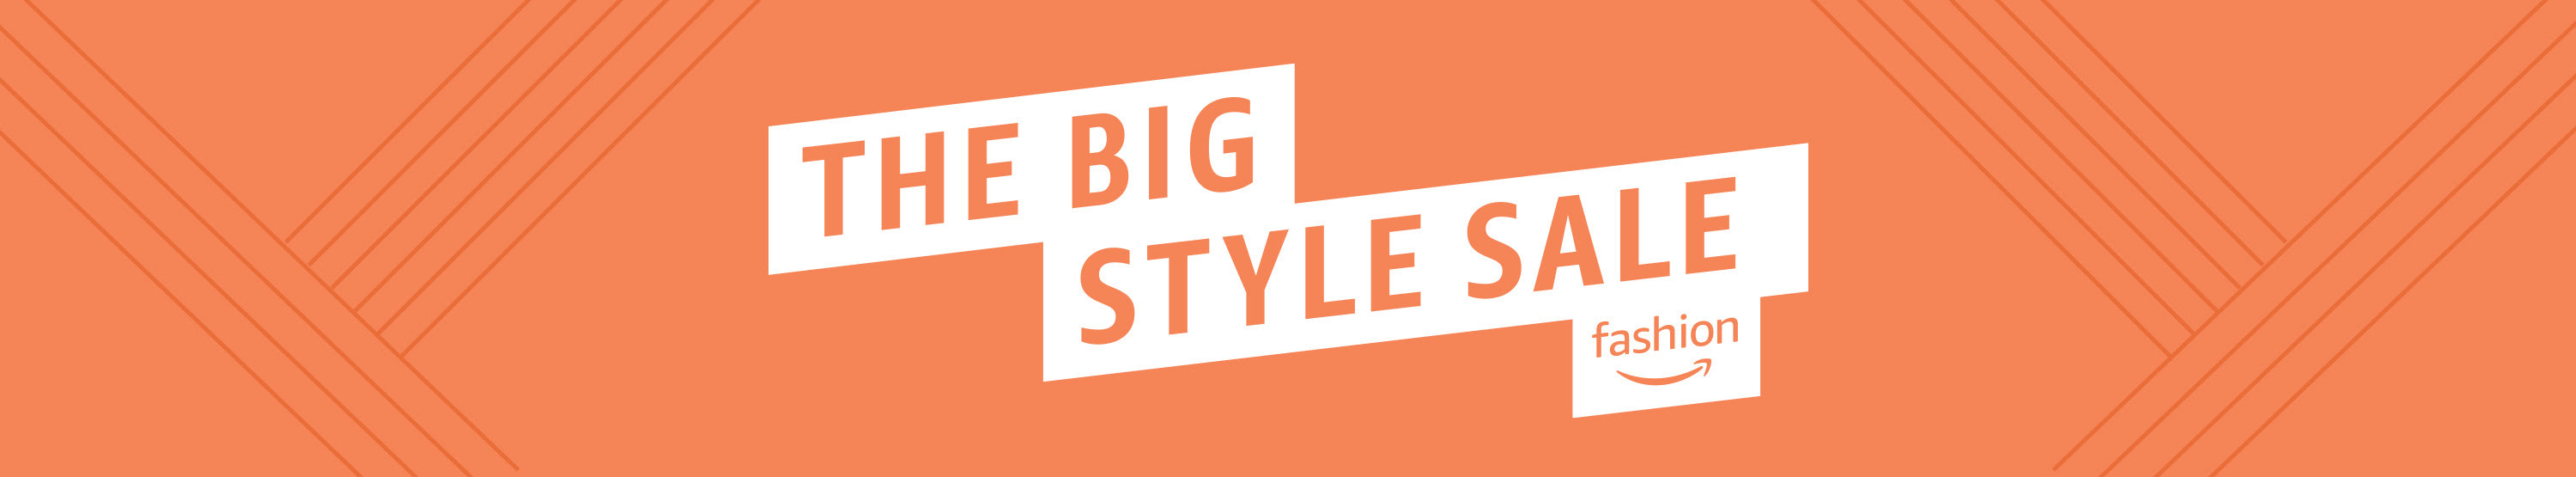 "A logo that says ""The Big Style Sale"""